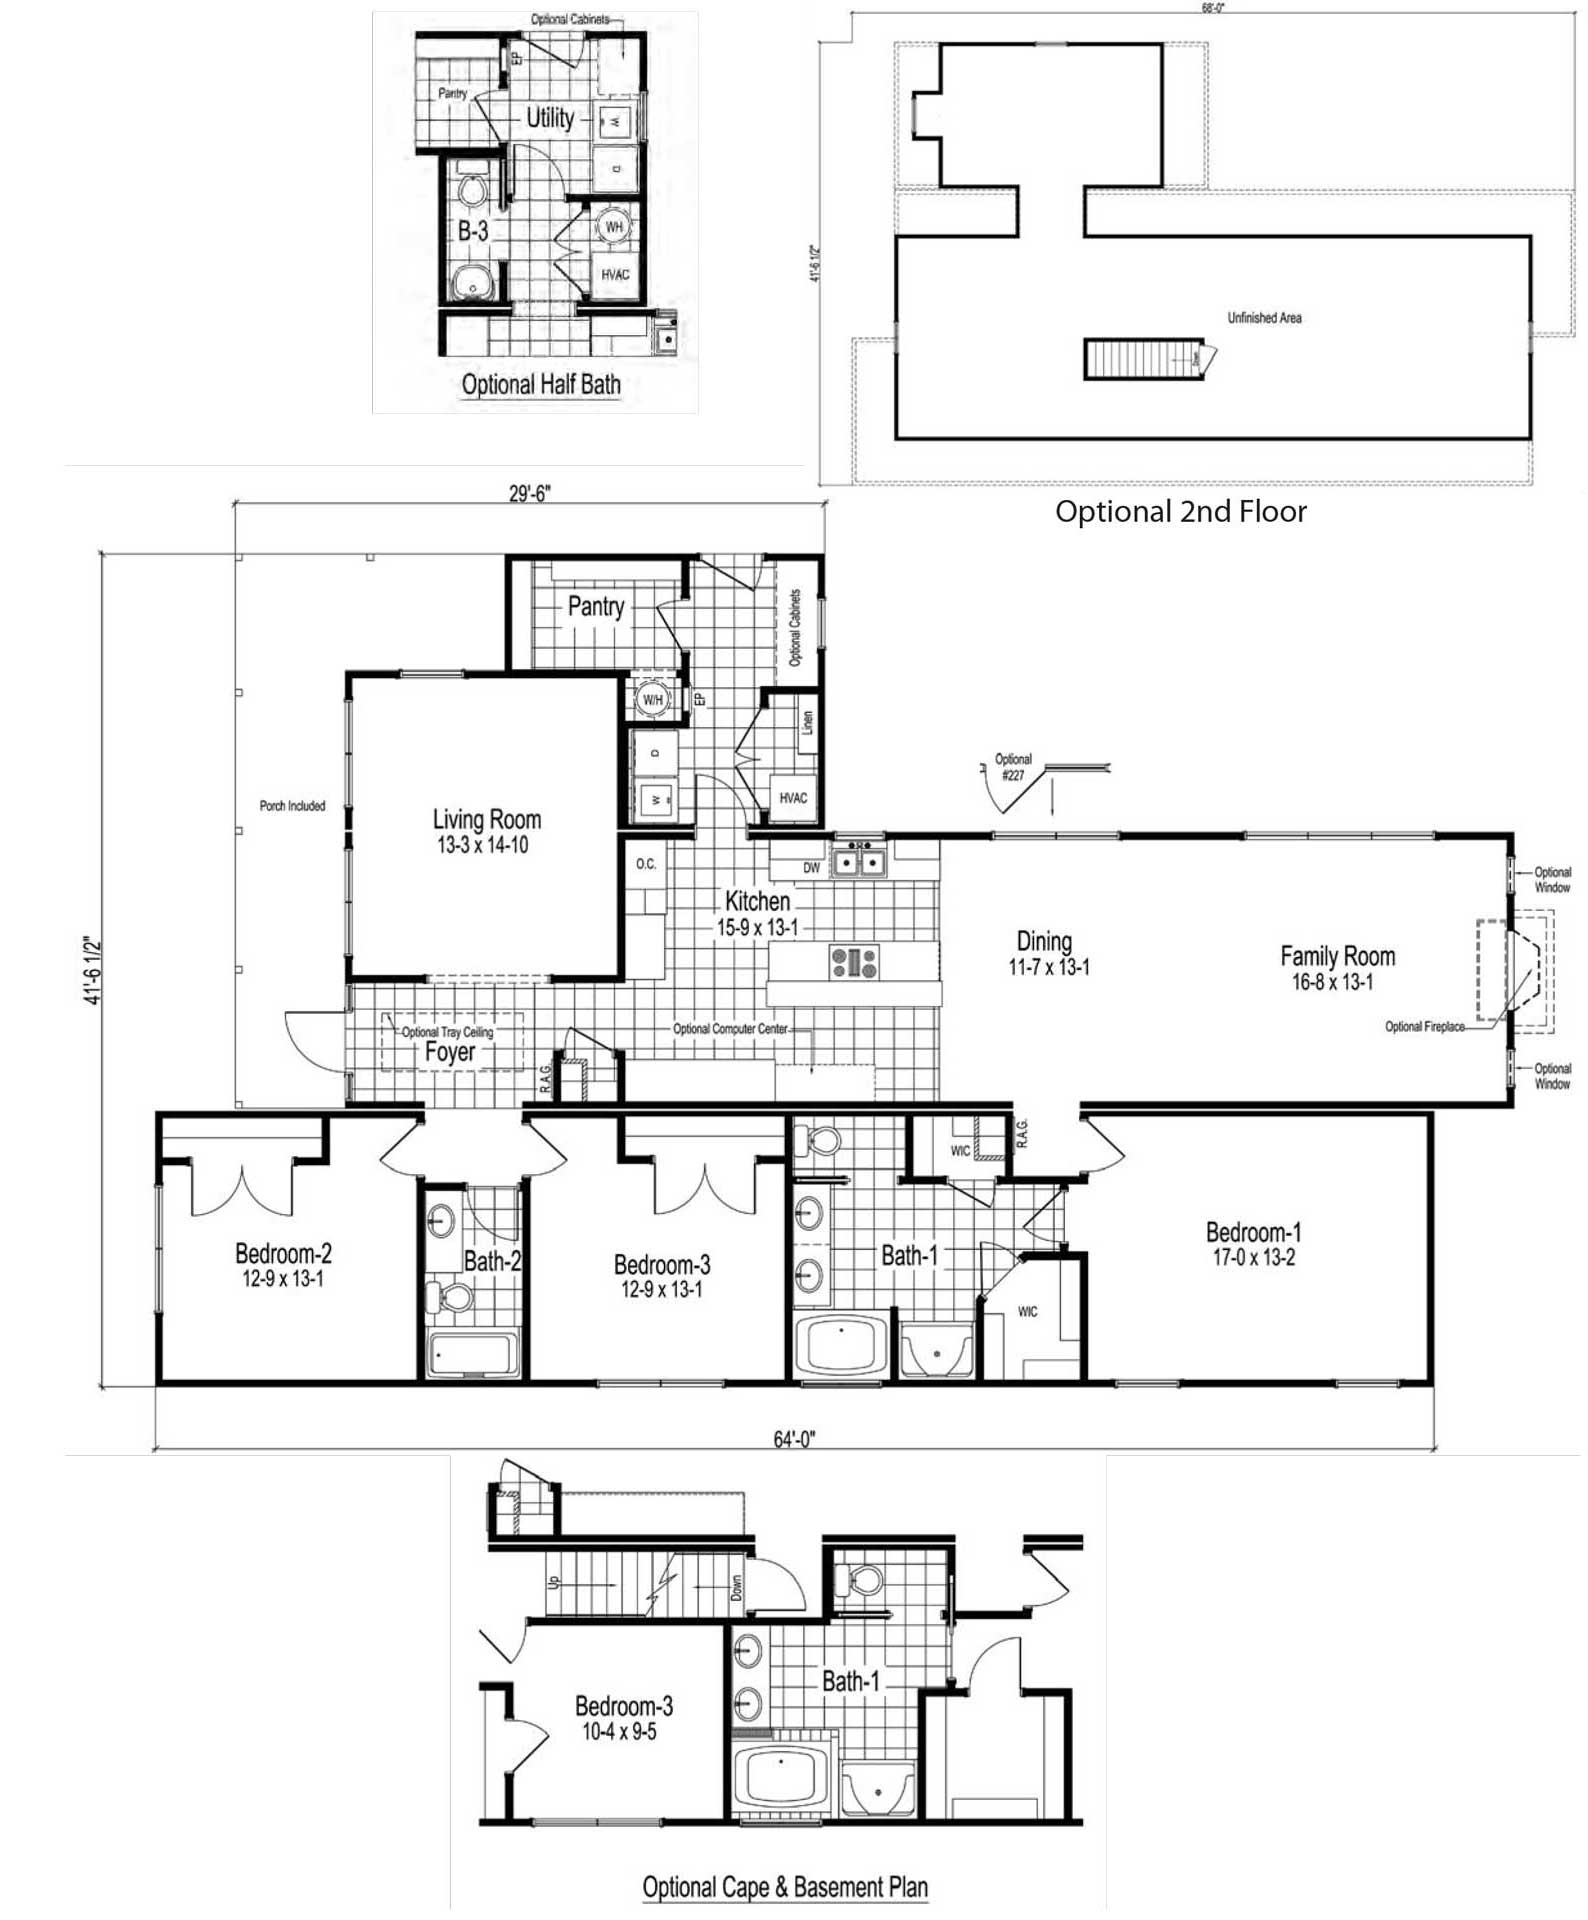 Canal Street Ranch Modular Home Floor Plan